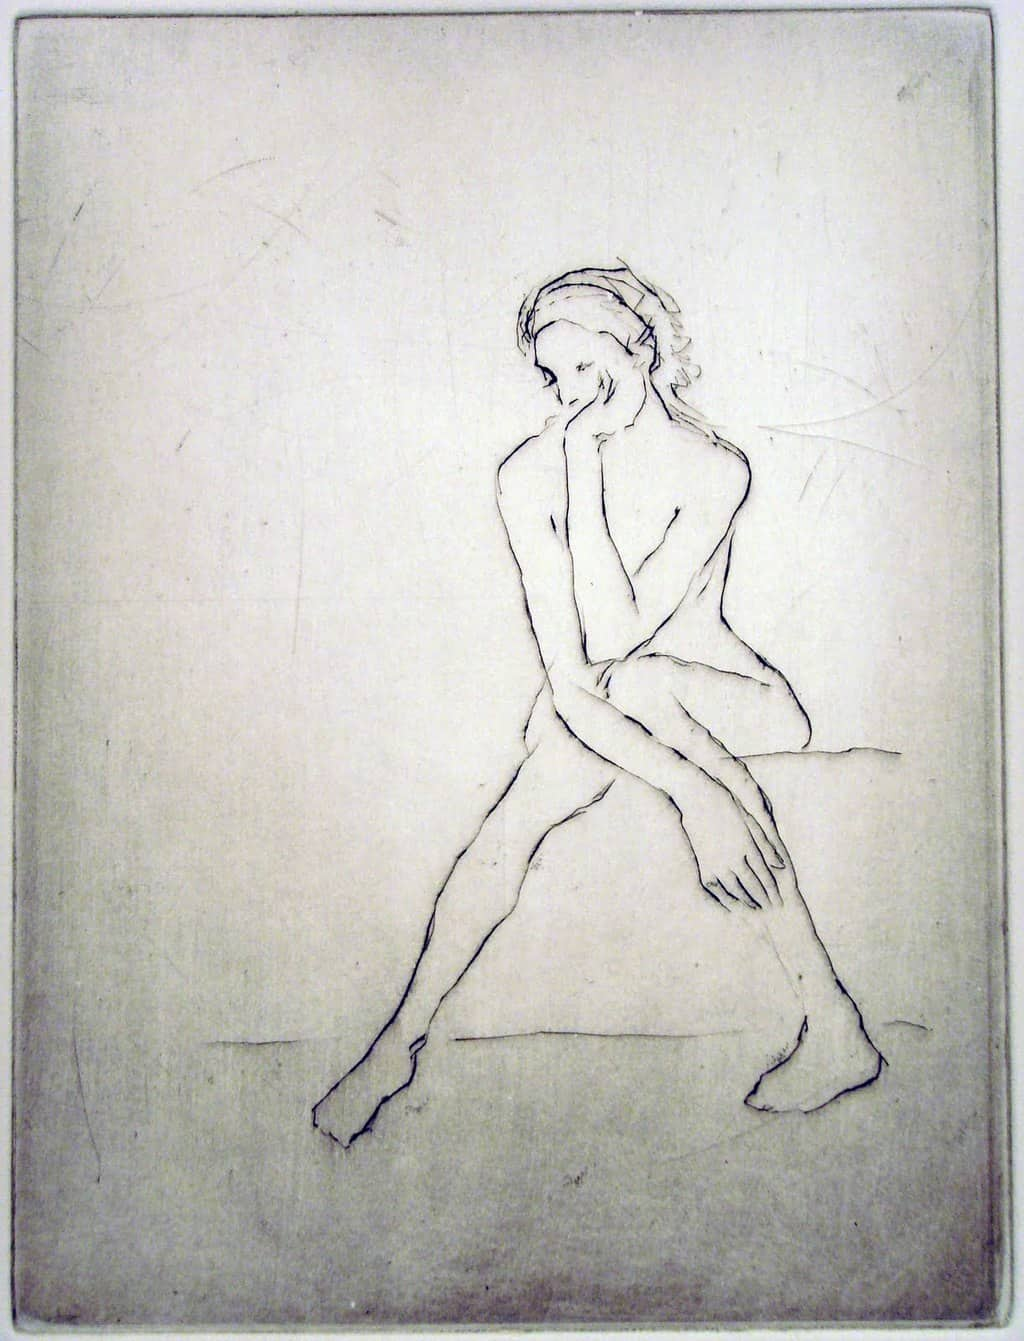 """""""Untitled Nude"""" - line drawing of a lanky nude model in a thoughtful sitting pose"""